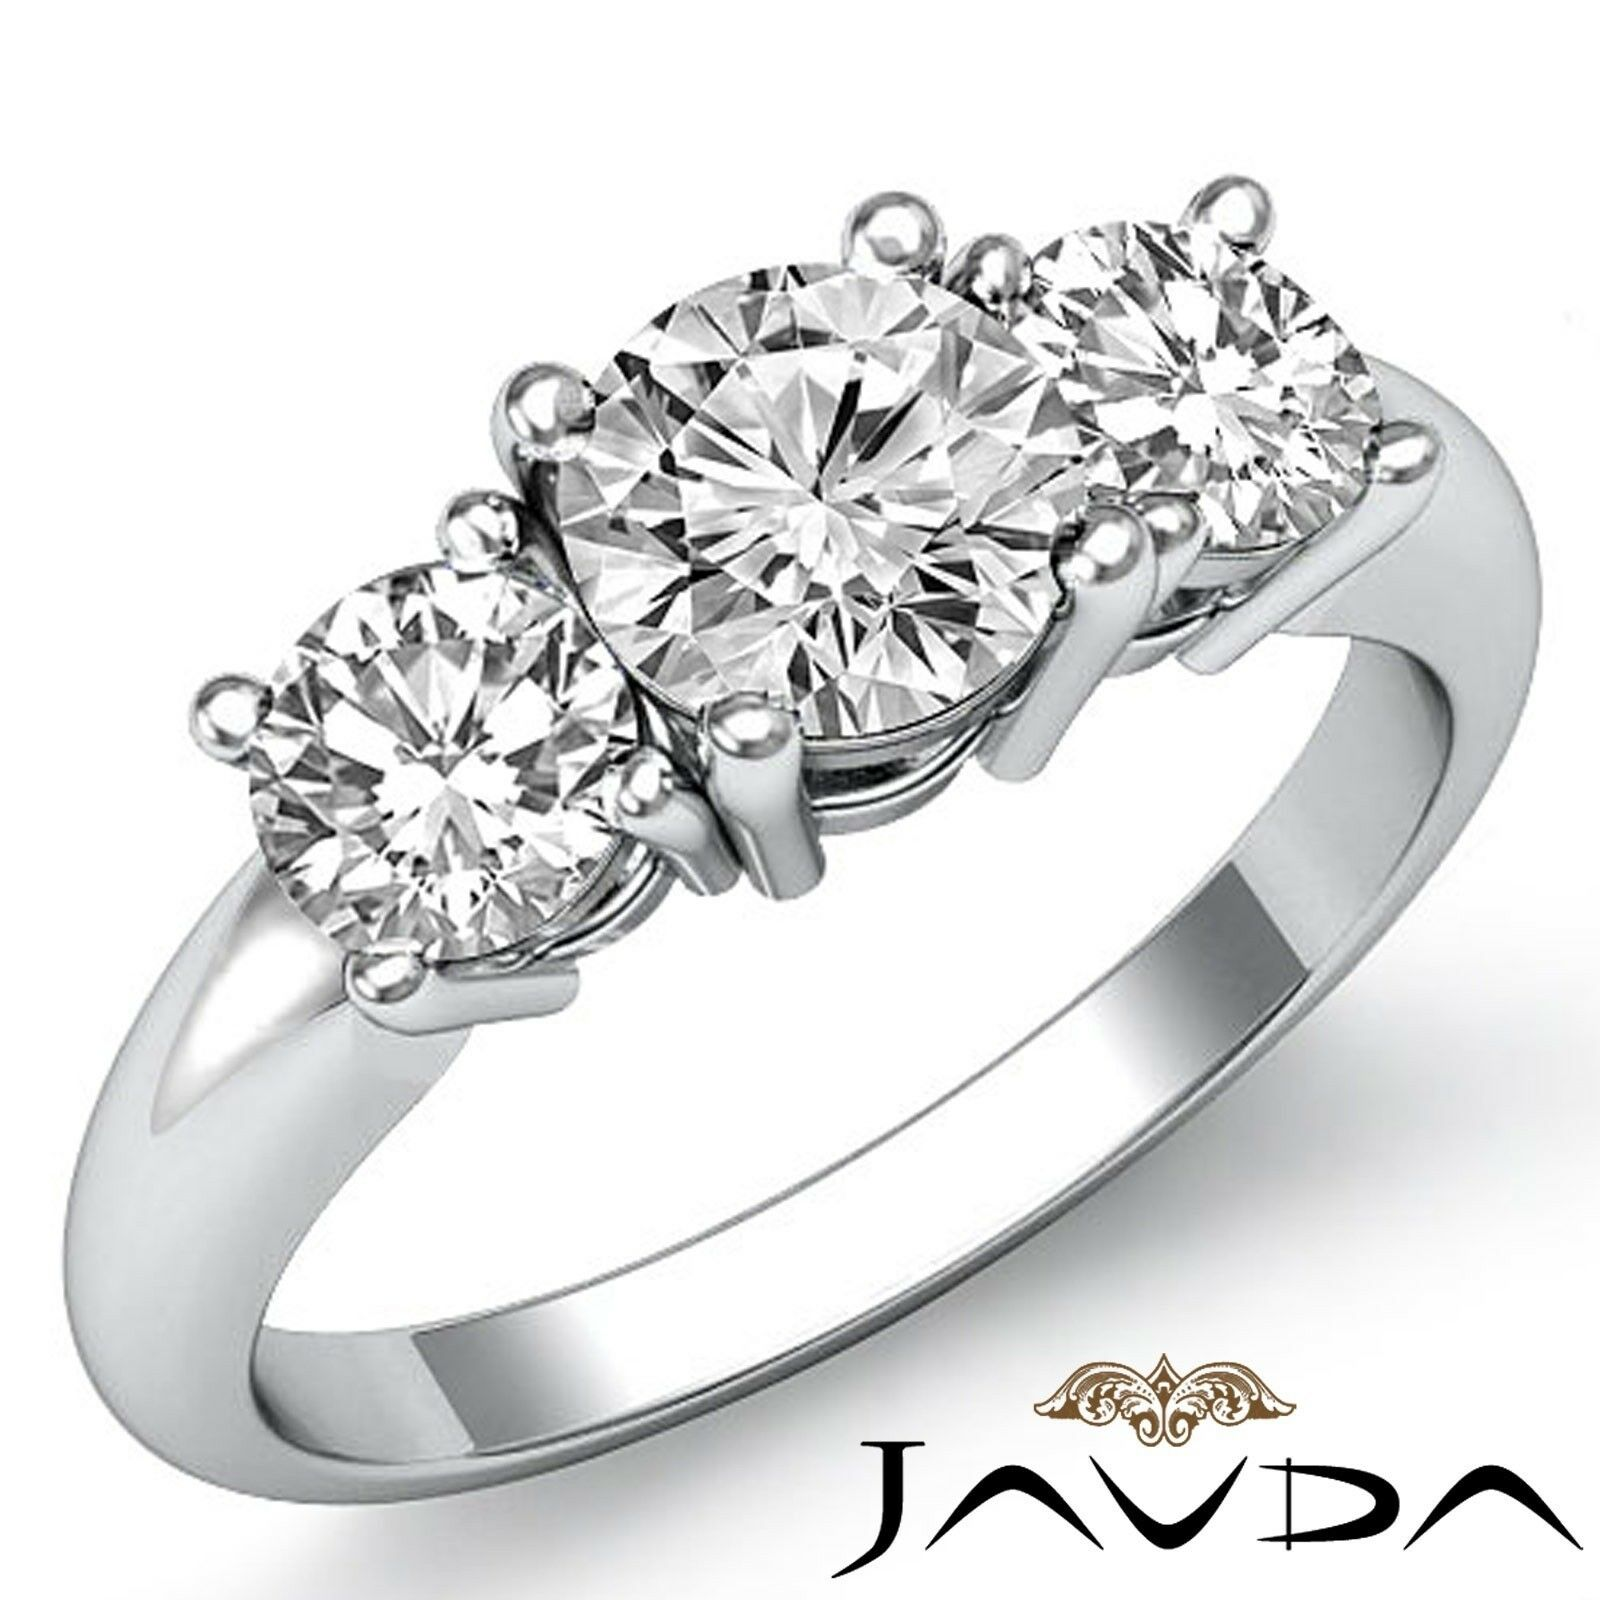 1.5ct Classic Three Stone Basket Round Diamond Engagement Ring GIA G-VVS2 W Gold